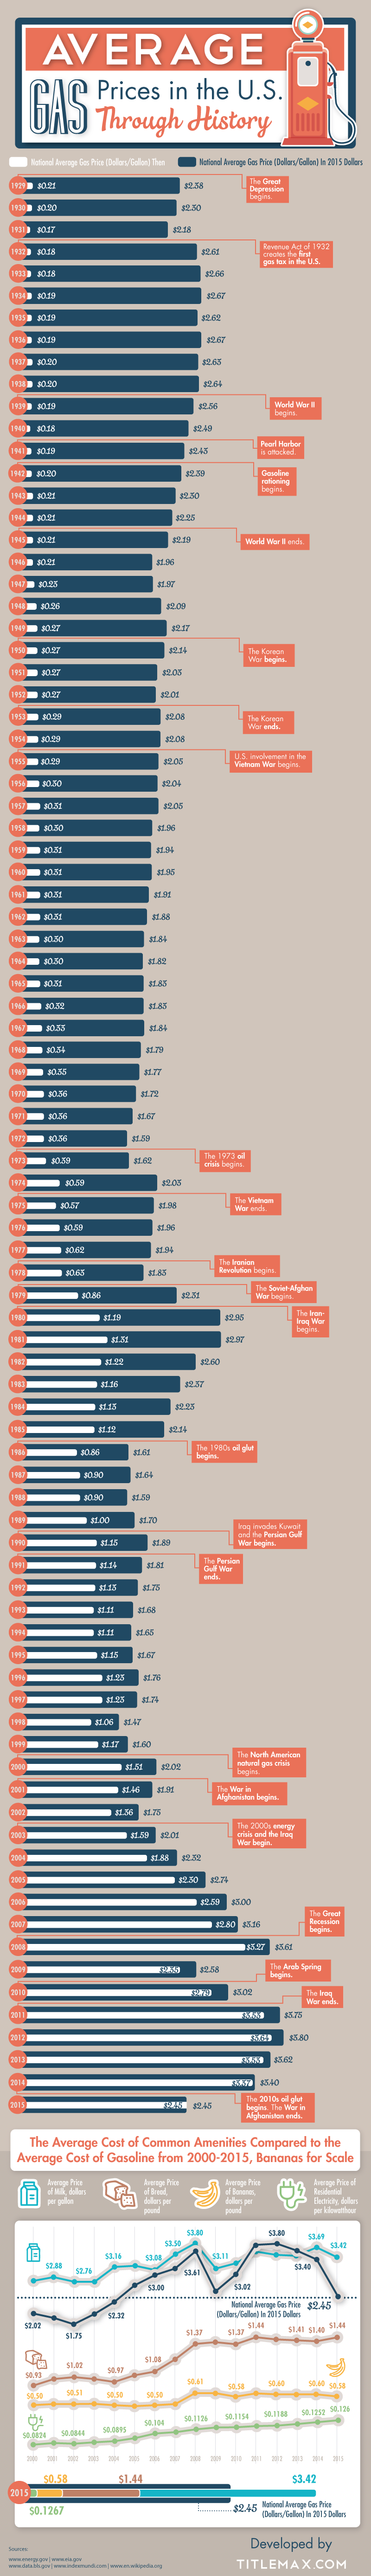 Know How Gas Prices Evolved Through The Years - Infographic GP